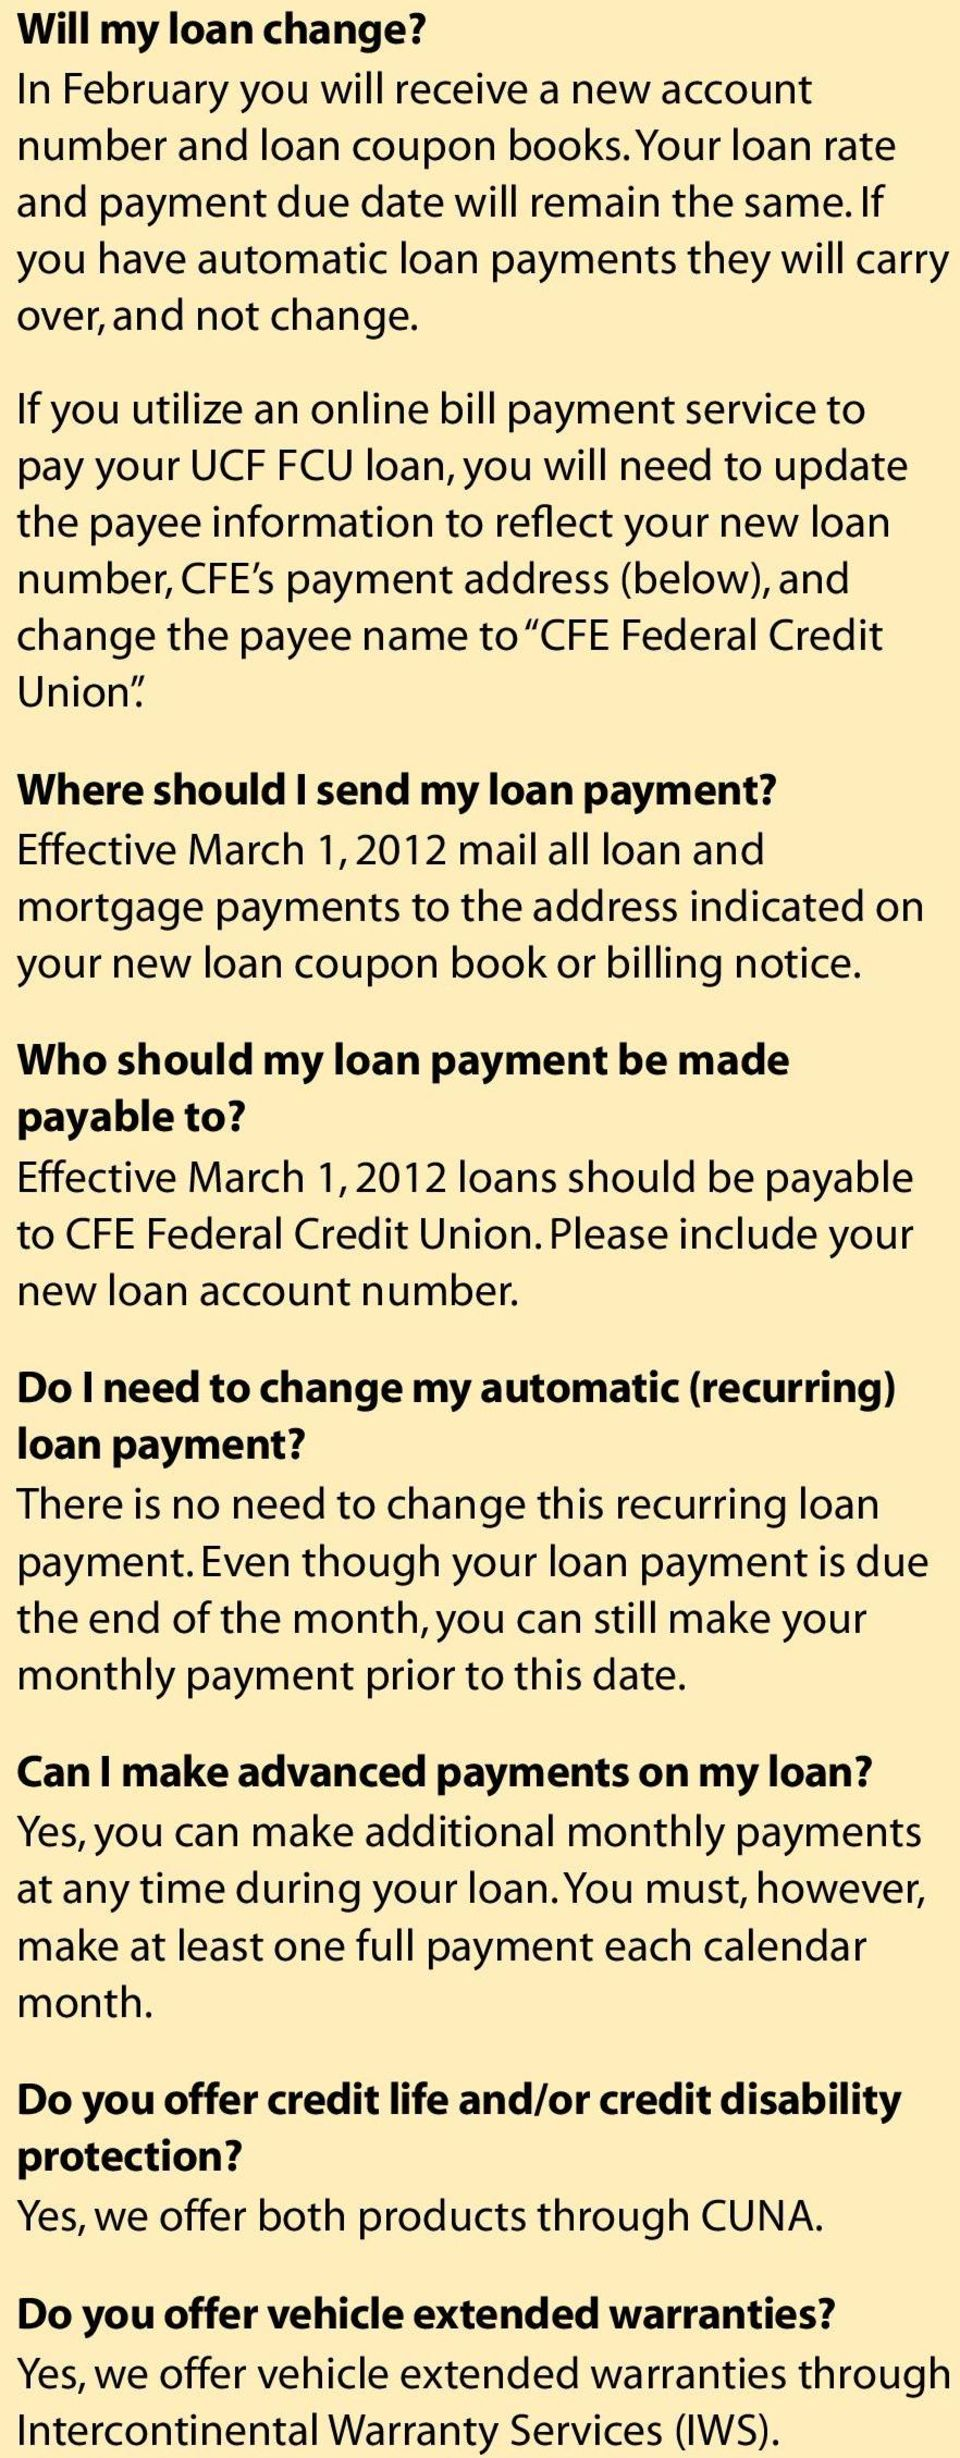 If you utilize an online bill payment service to pay your UCF FCU loan, you will need to update the payee information to reflect your new loan number, CFE s payment address (below), and change the